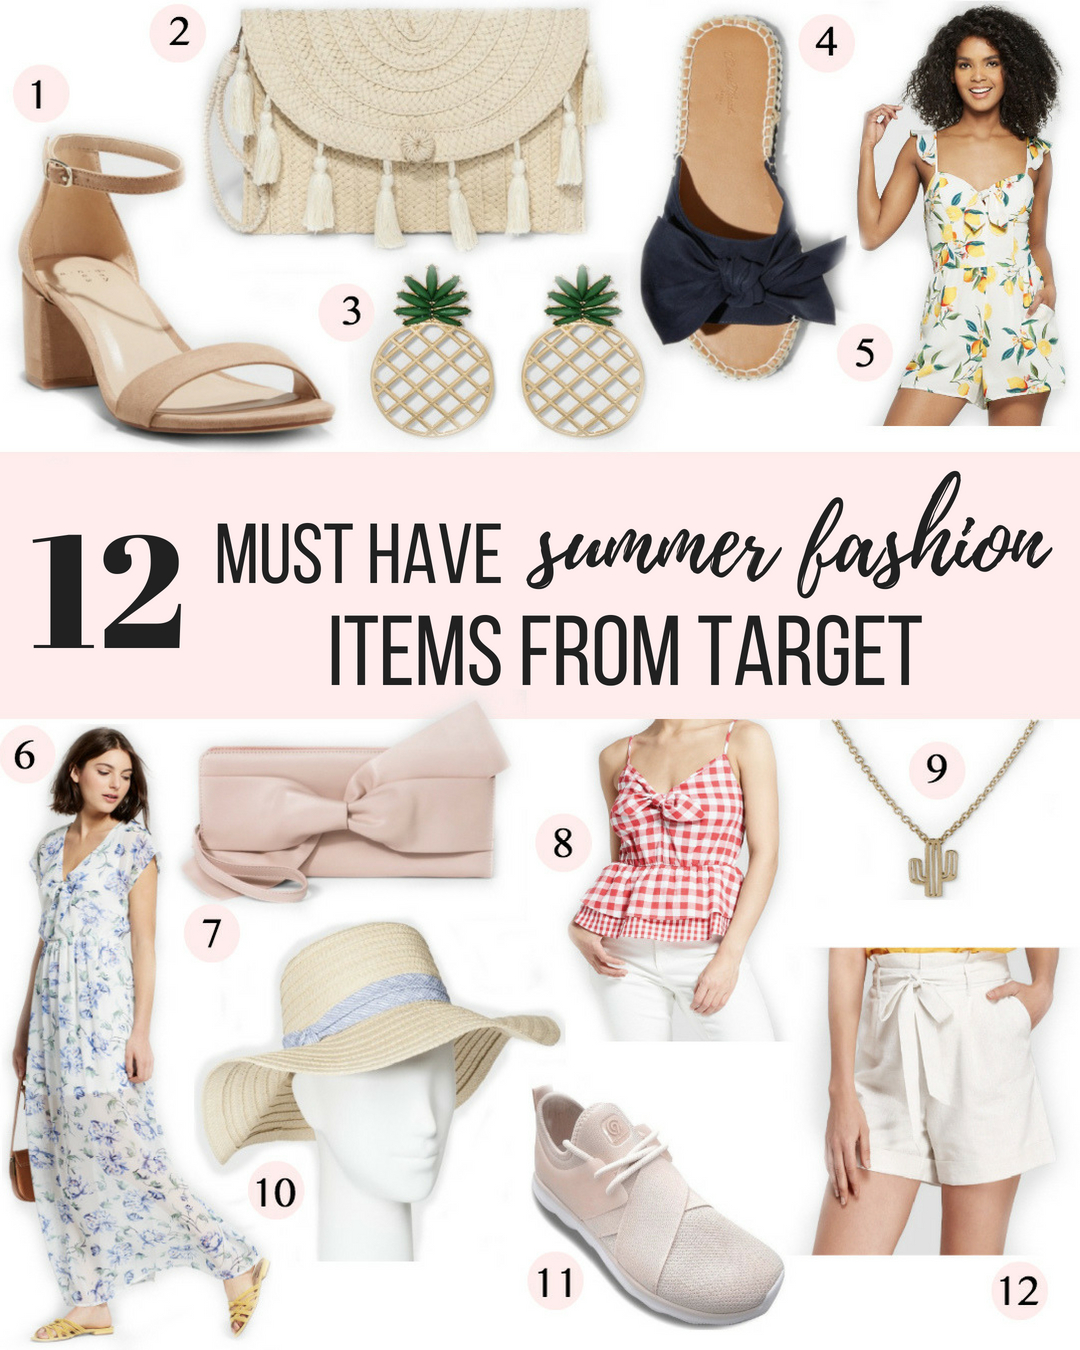 5b12e40fe3e9 12 Summer Fashion Items From Target  New affordable fashion at Target